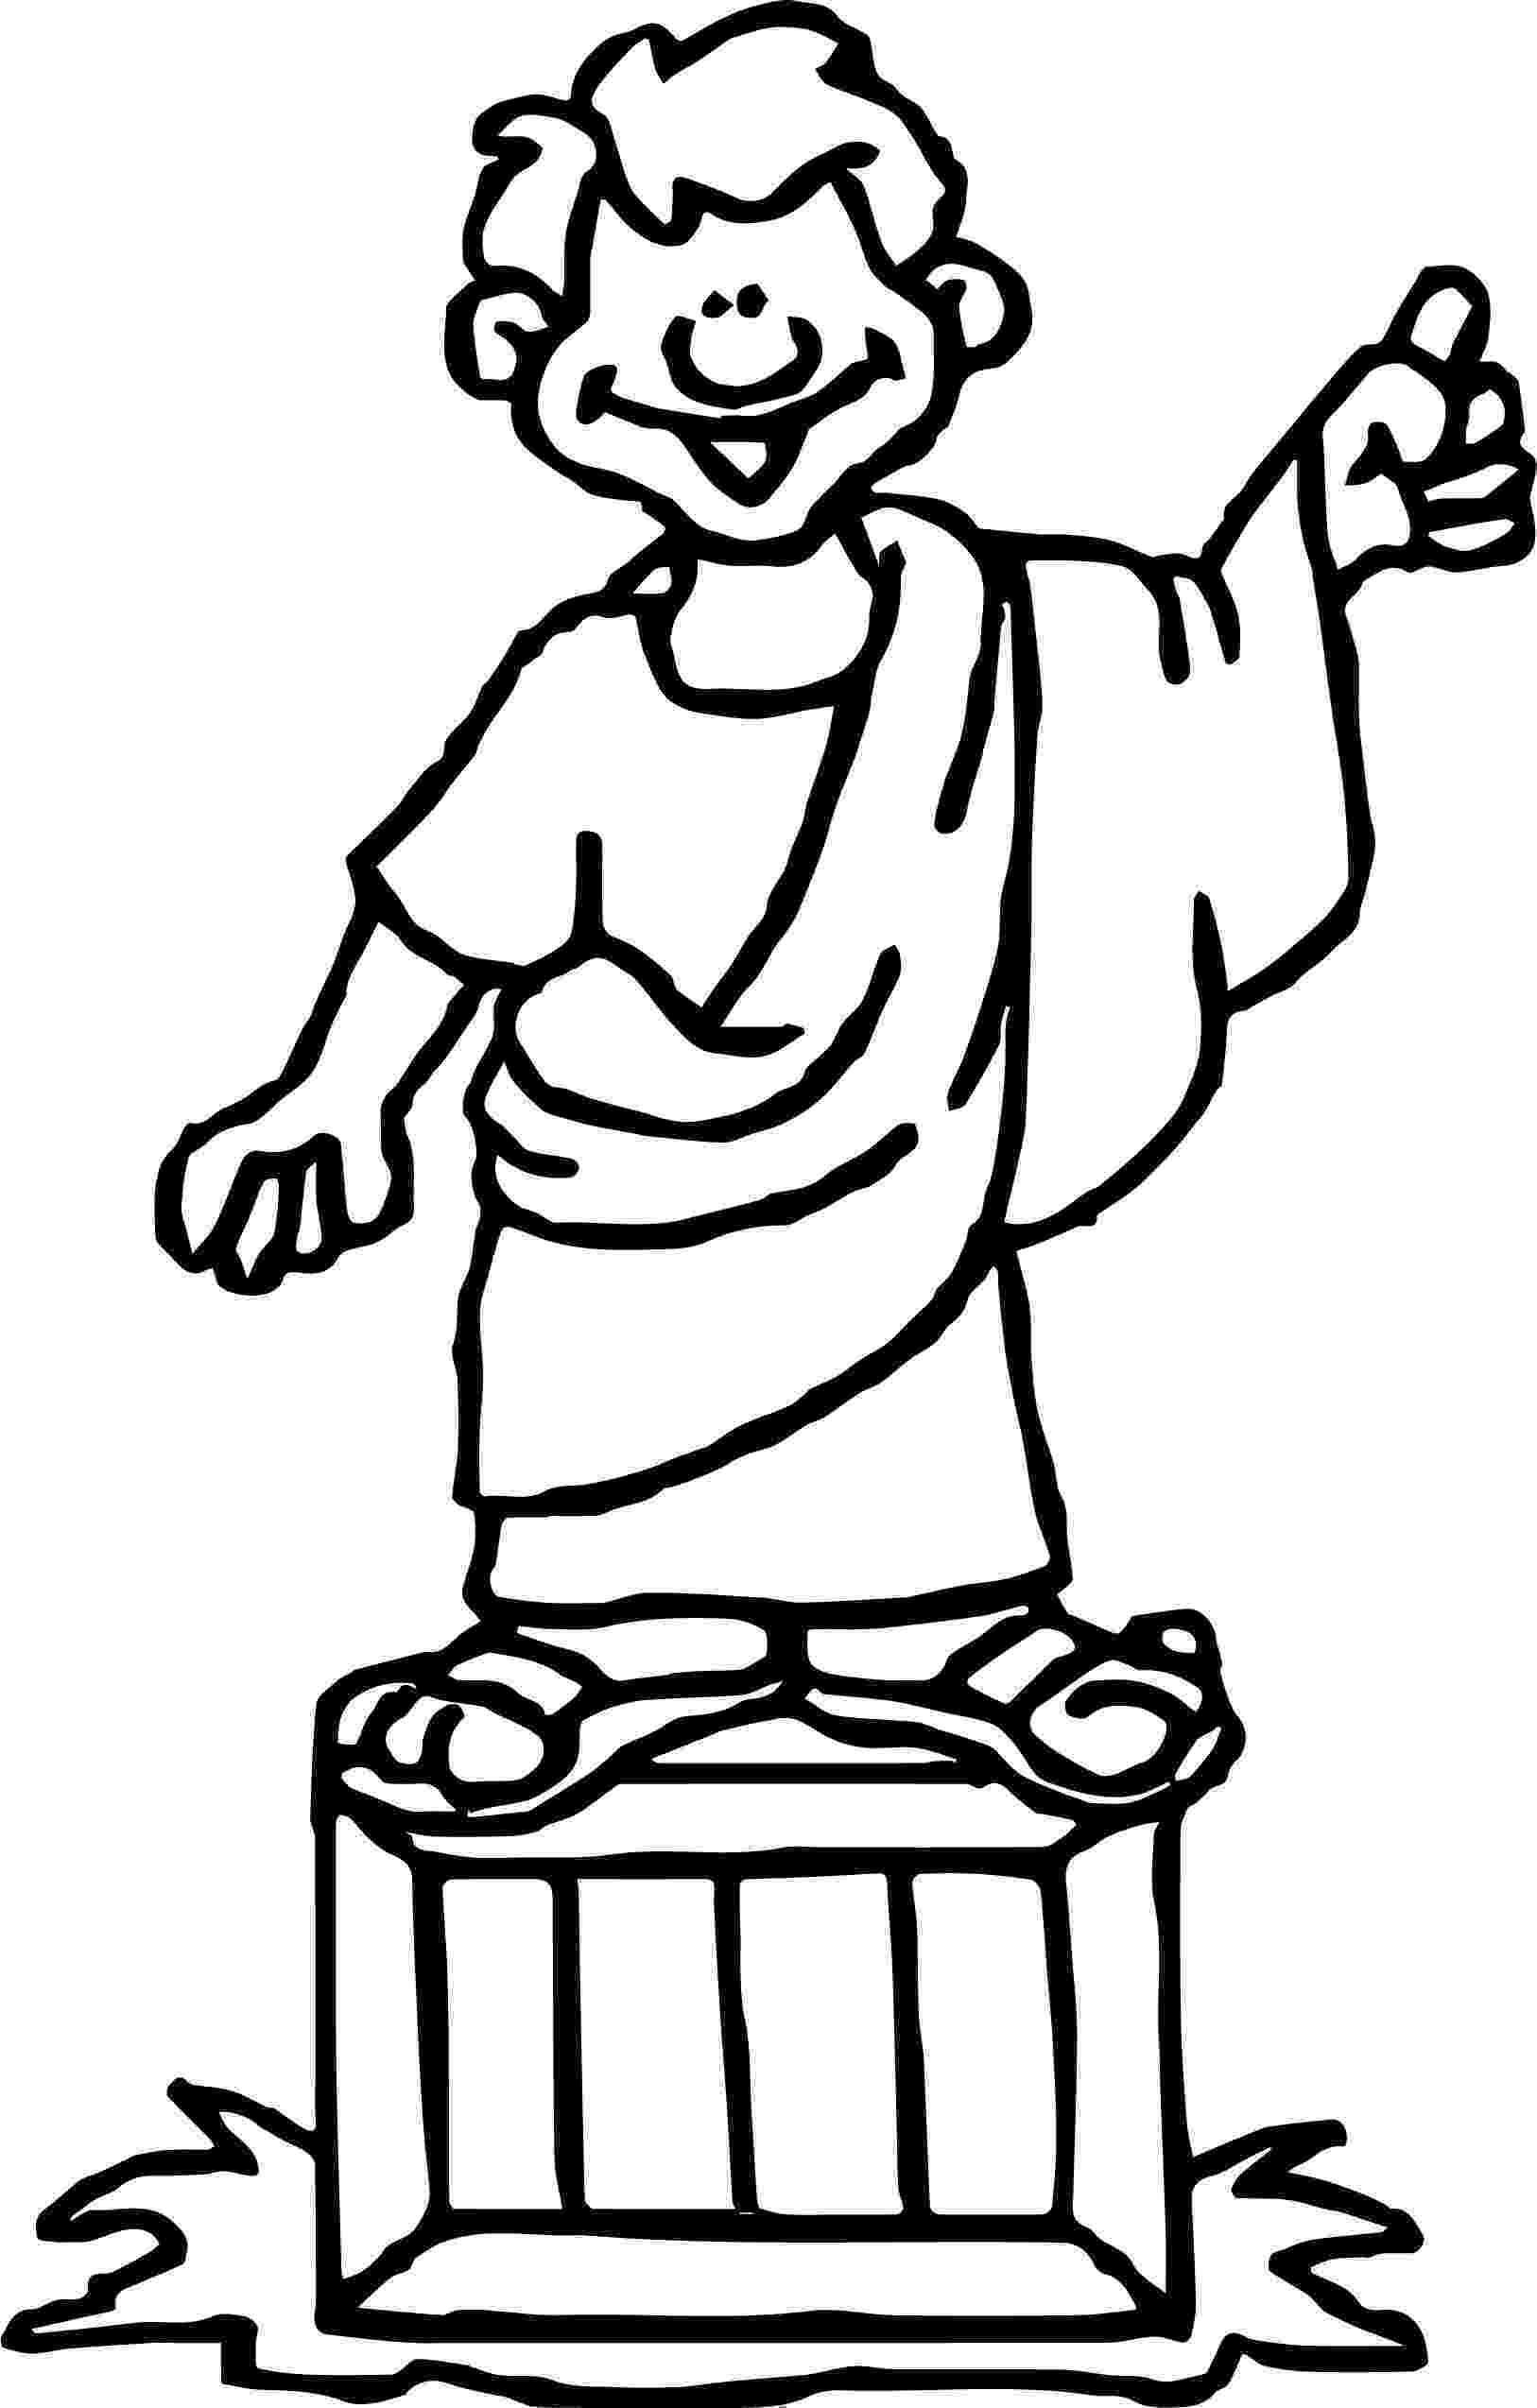 ancient rome coloring pages ancient rome talk coloring page wecoloringpagecom coloring pages rome ancient